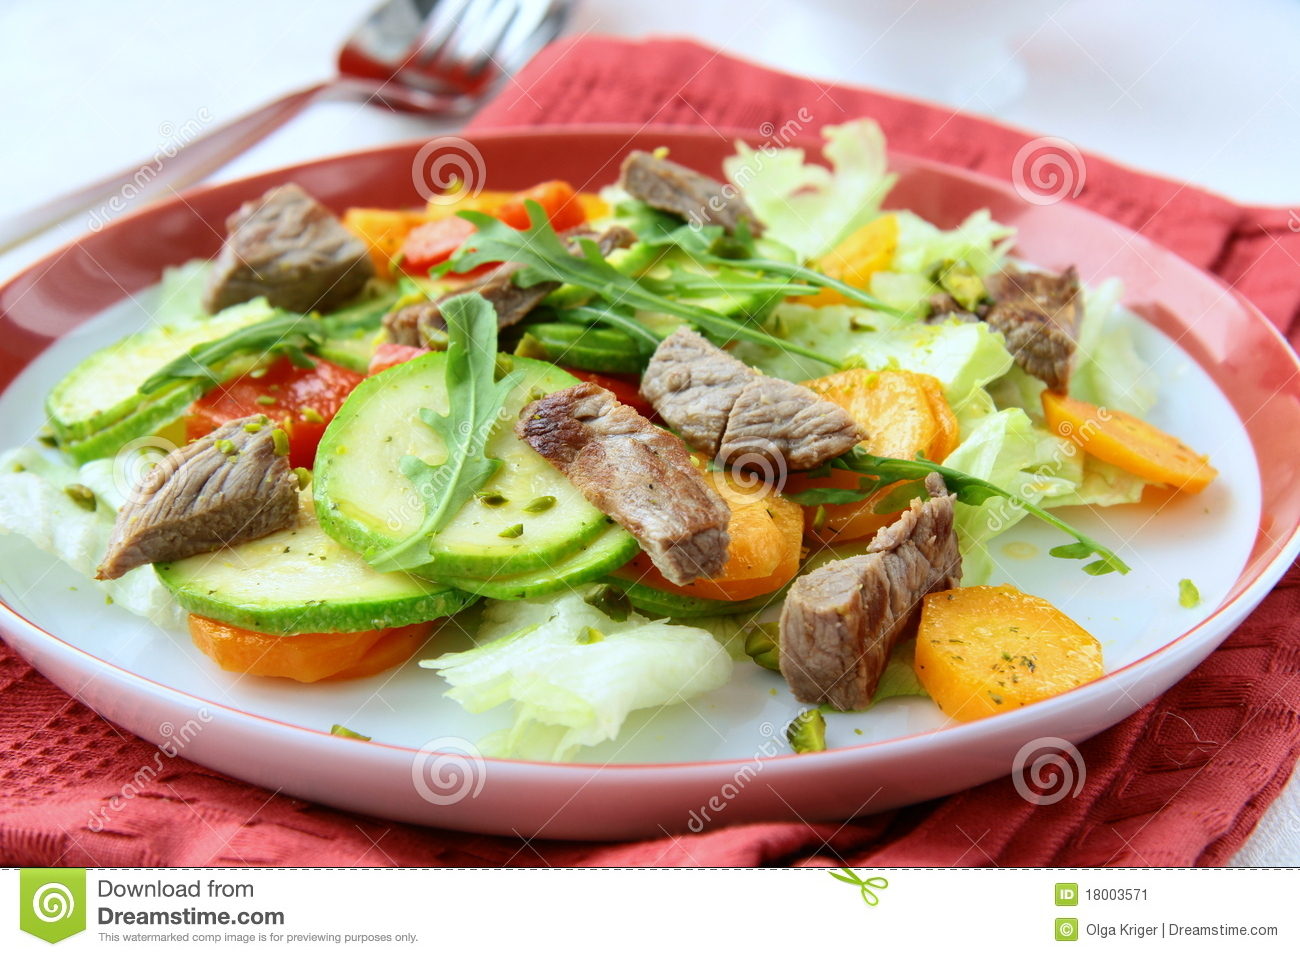 salad with vegetables and meat grilled stock image 18003571